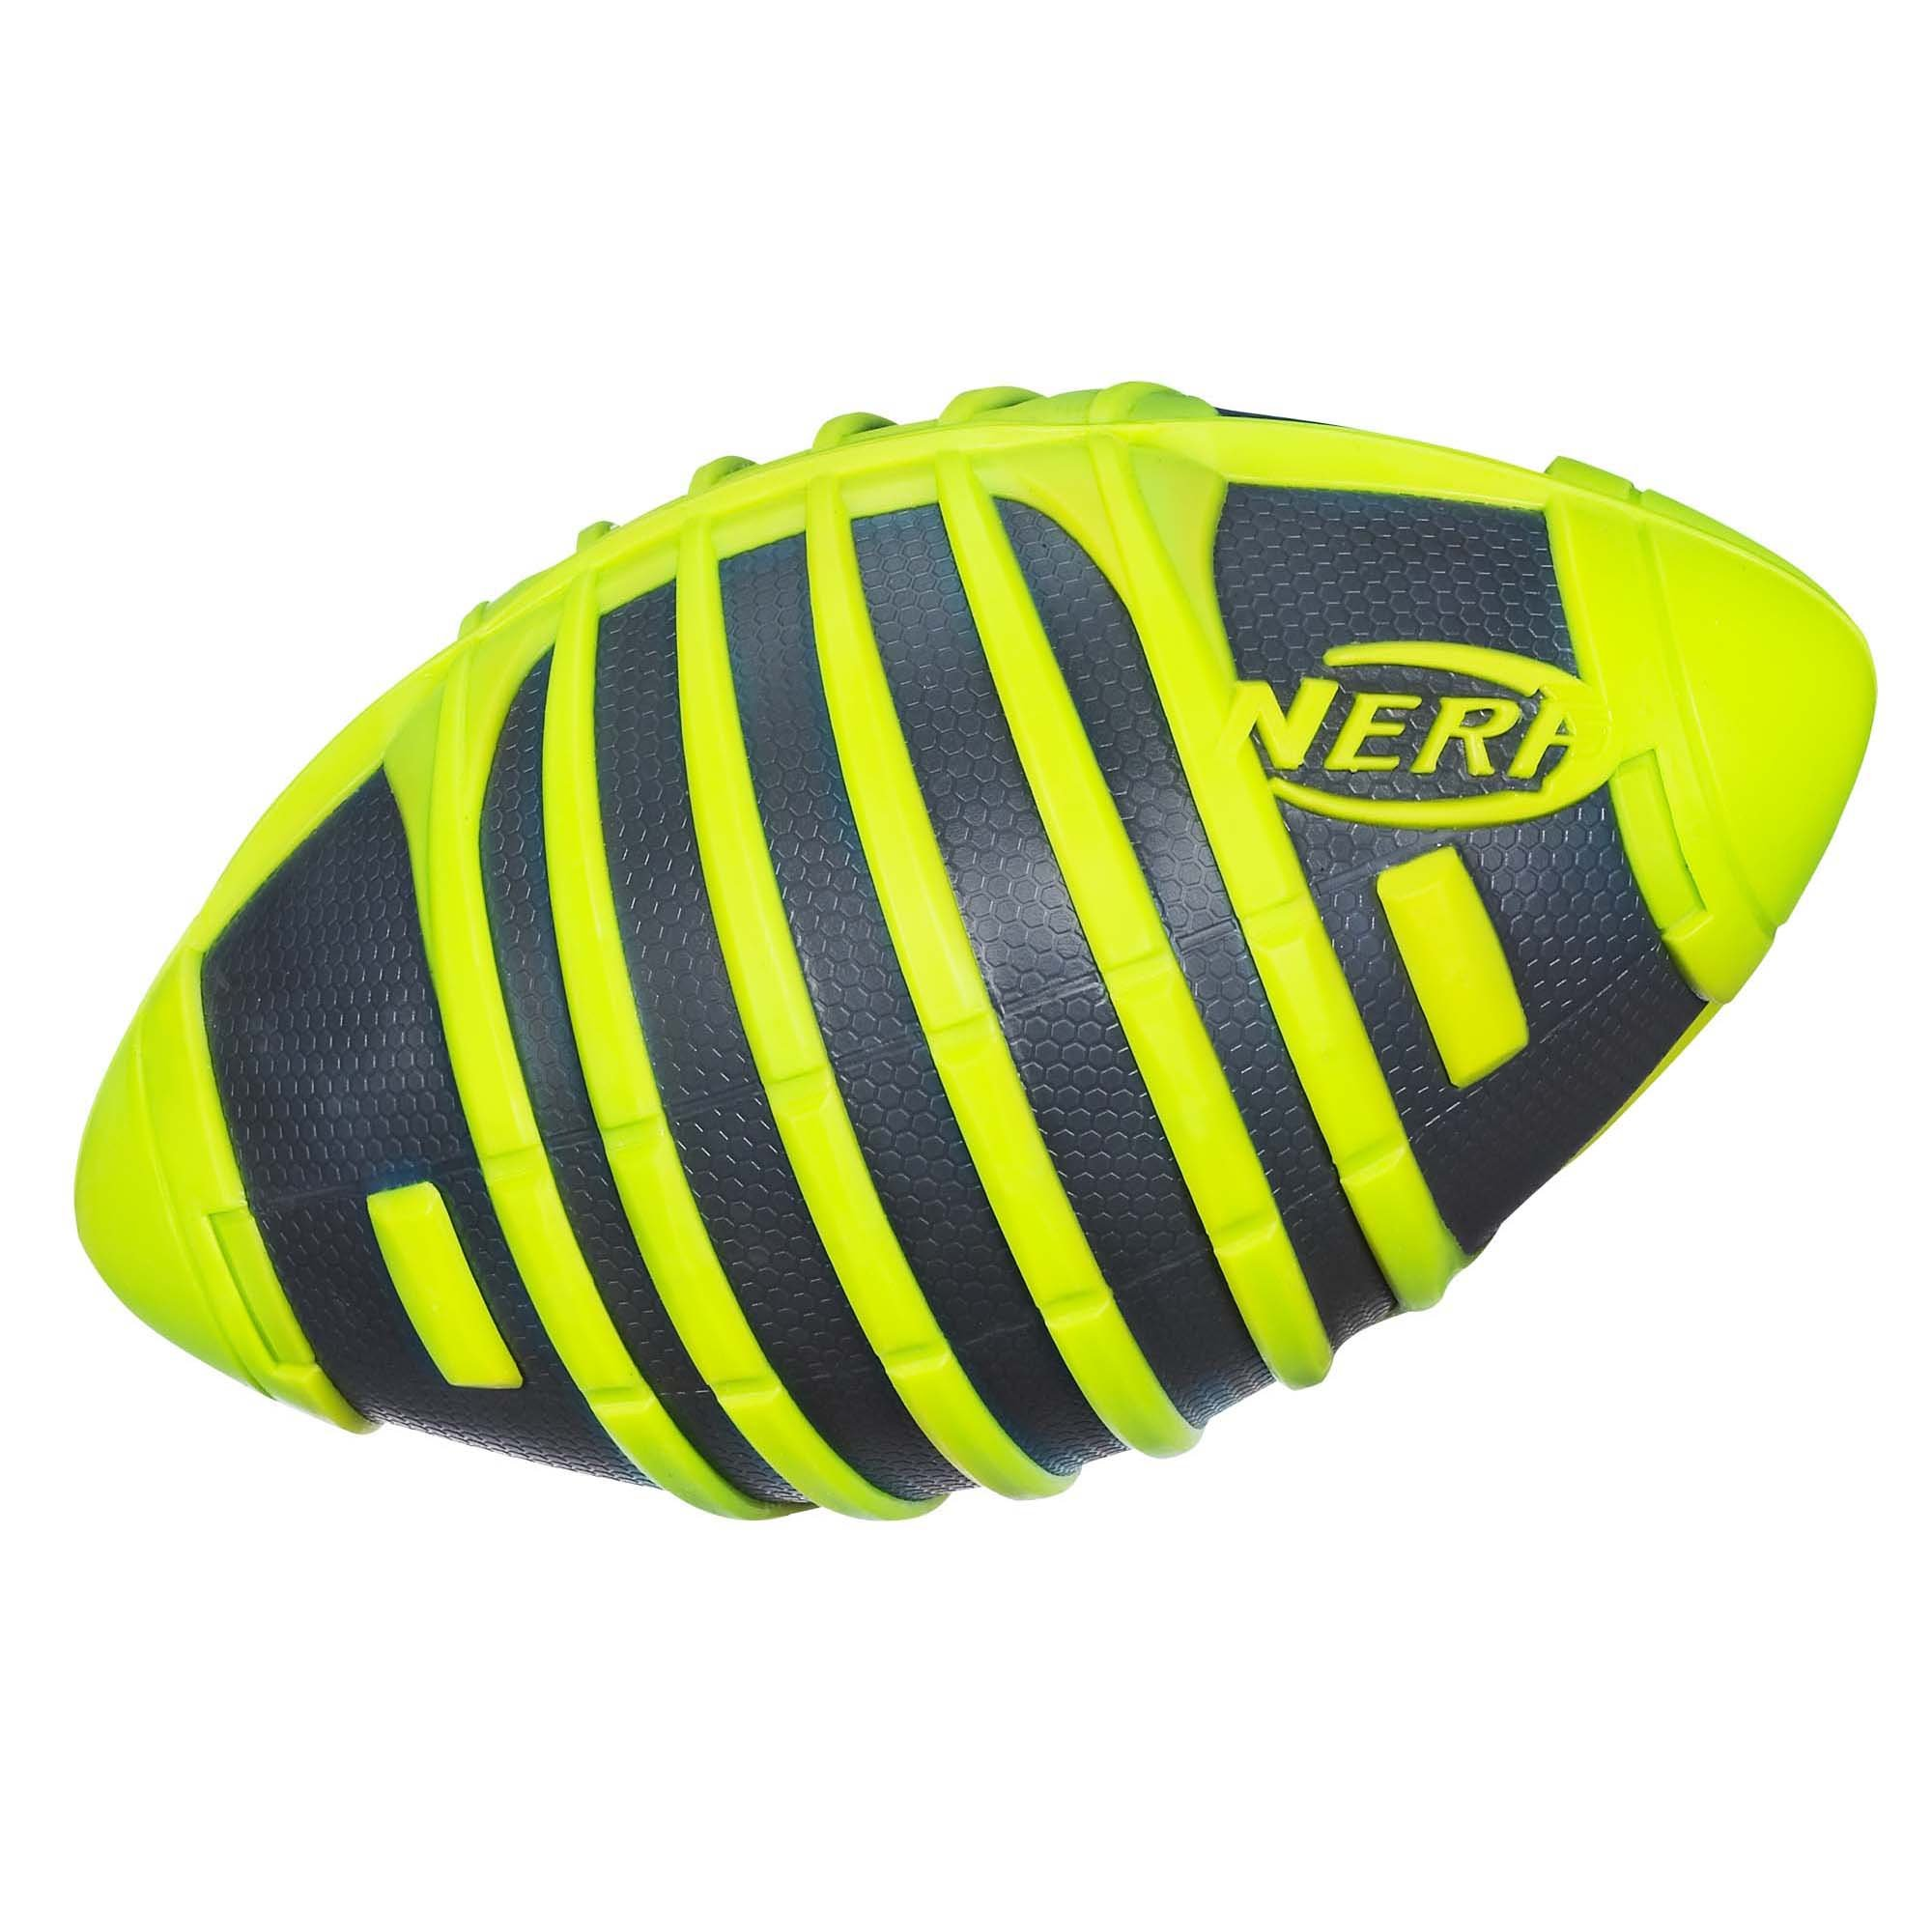 Nerf N-Sports Weather Blitz All Conditions Football - Green by NERF